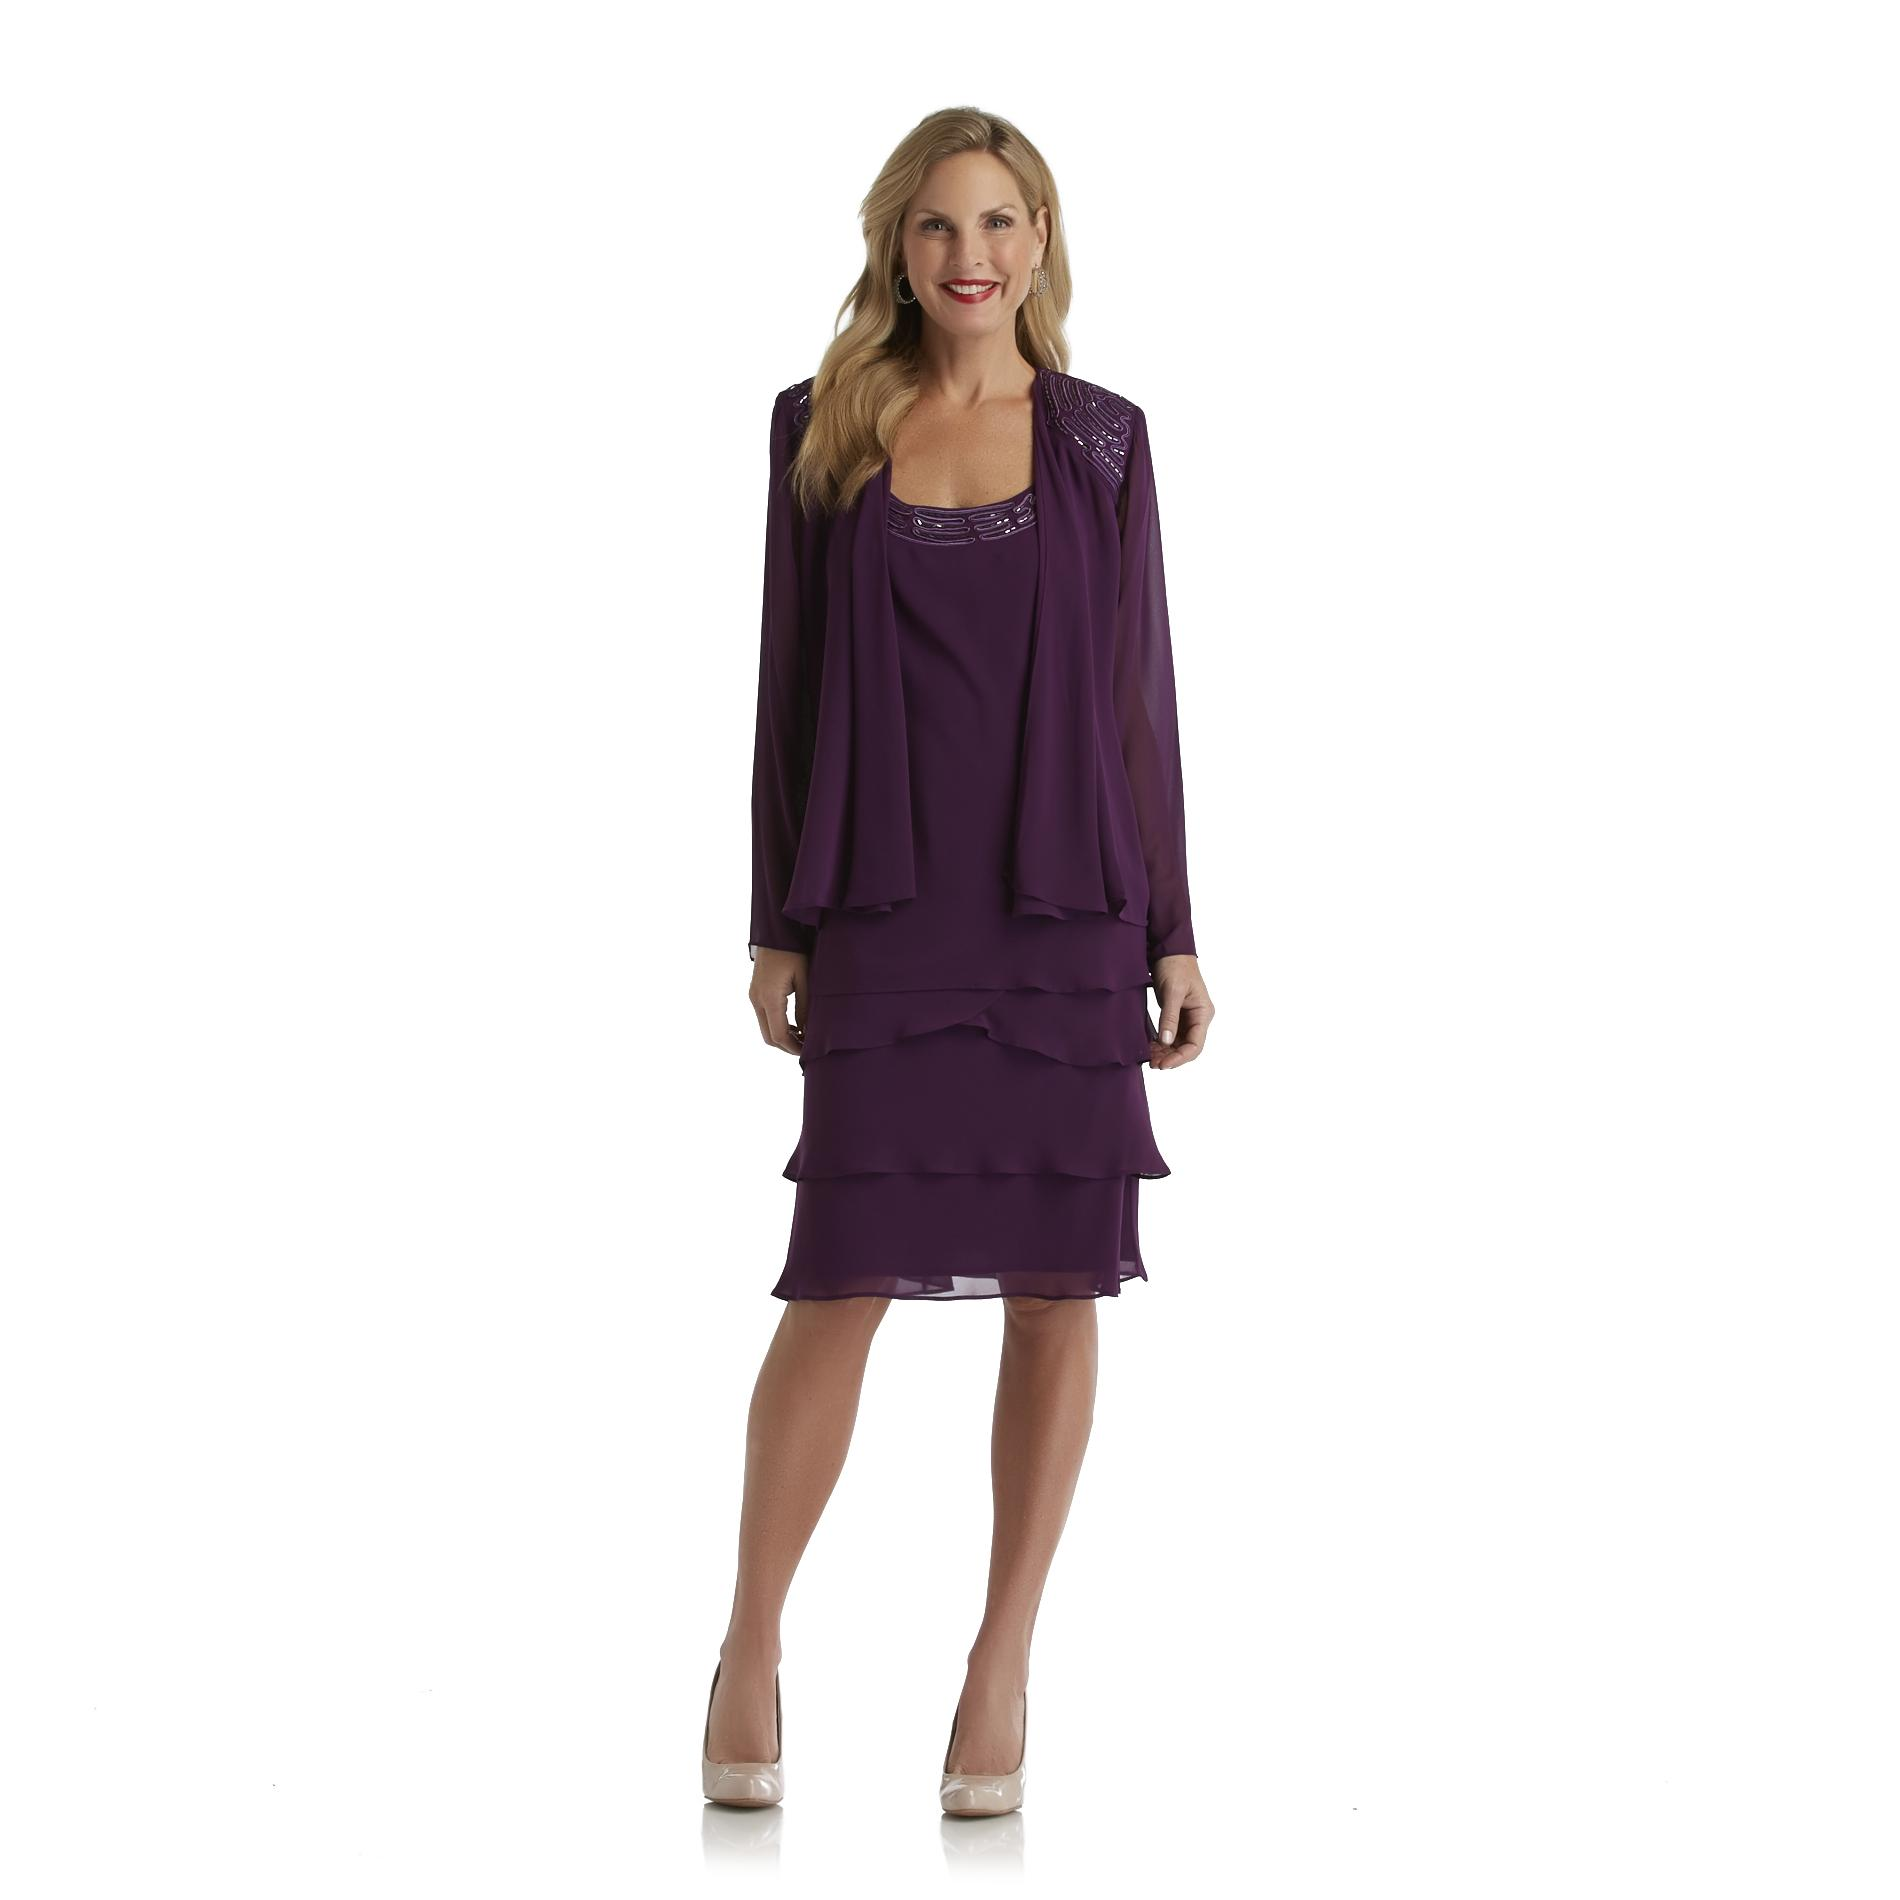 S. L. Fashions Women's Embellished Sleeveless Dress & Jacket at Sears.com